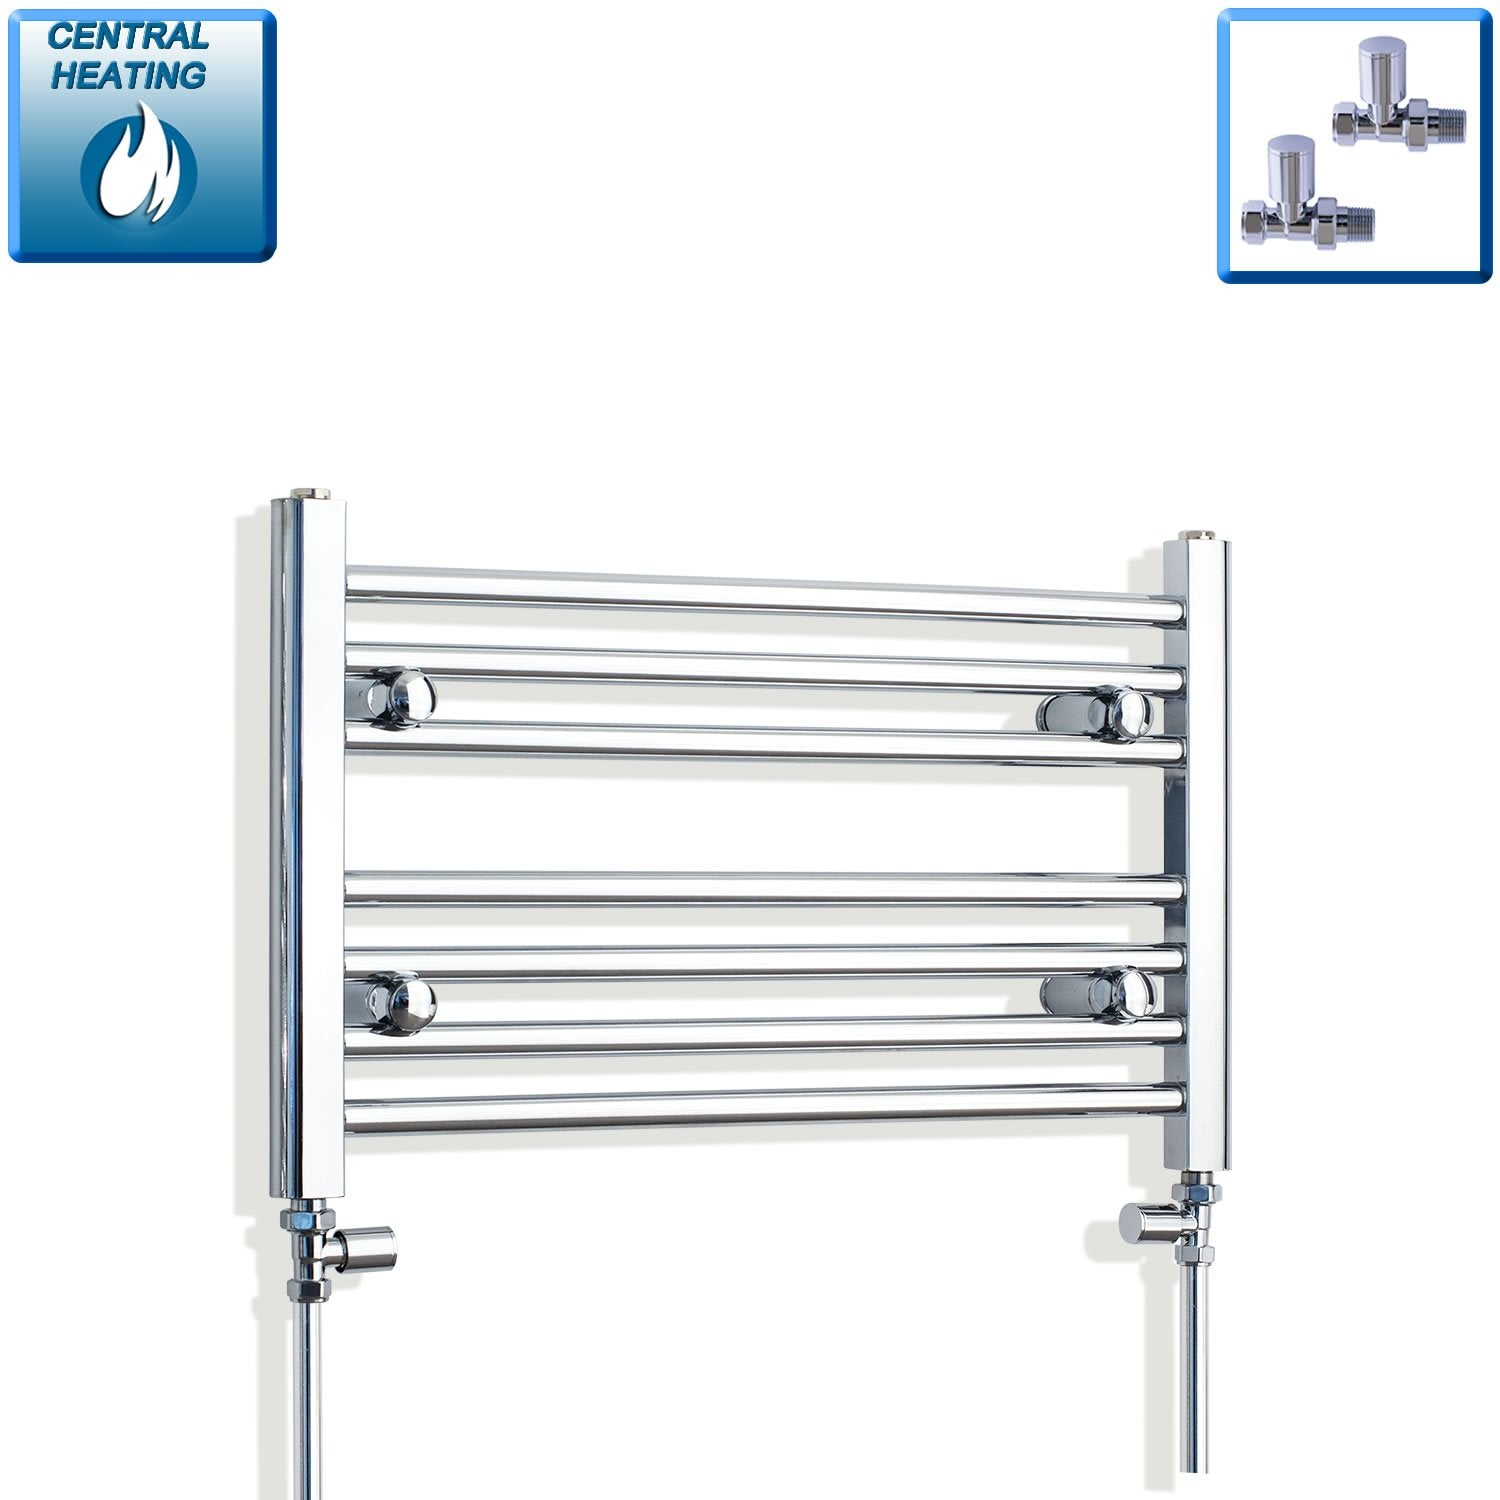 700mm Wide 400mm High Curved Chrome Heated Towel Rail Radiator HTR,With Straight Valve